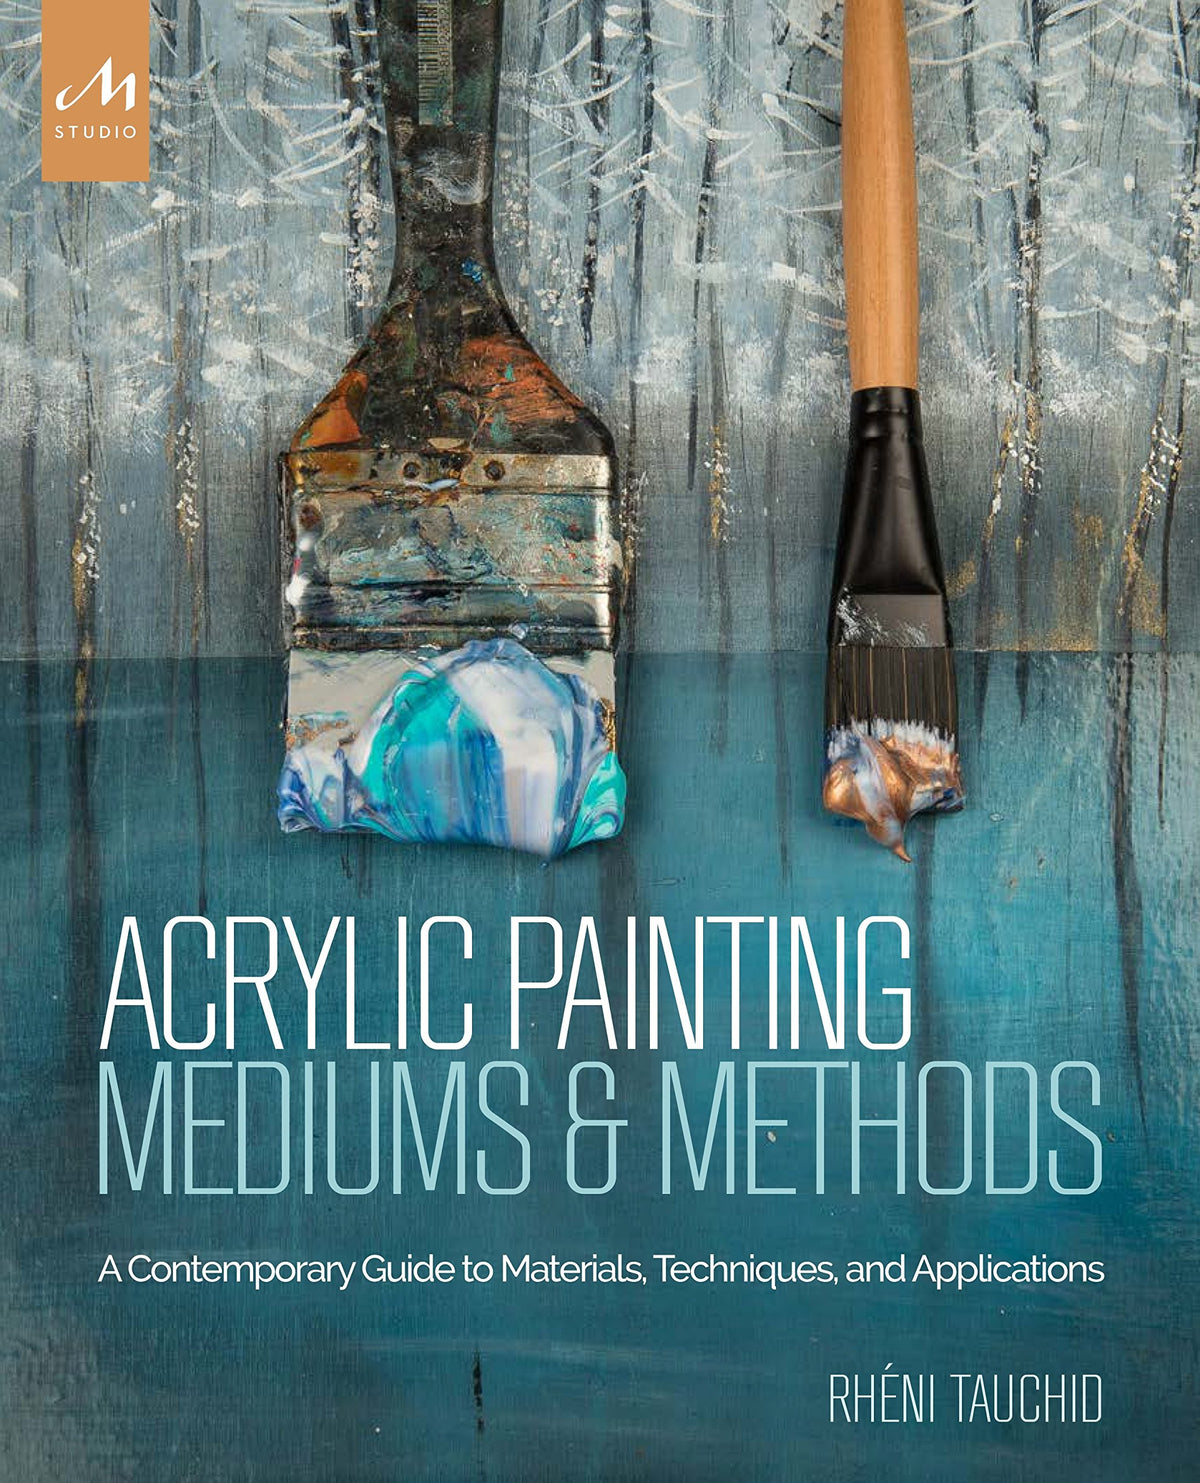 Acrylic Painting Mediums and Methods by Rheni Tauchid (4436800929879)